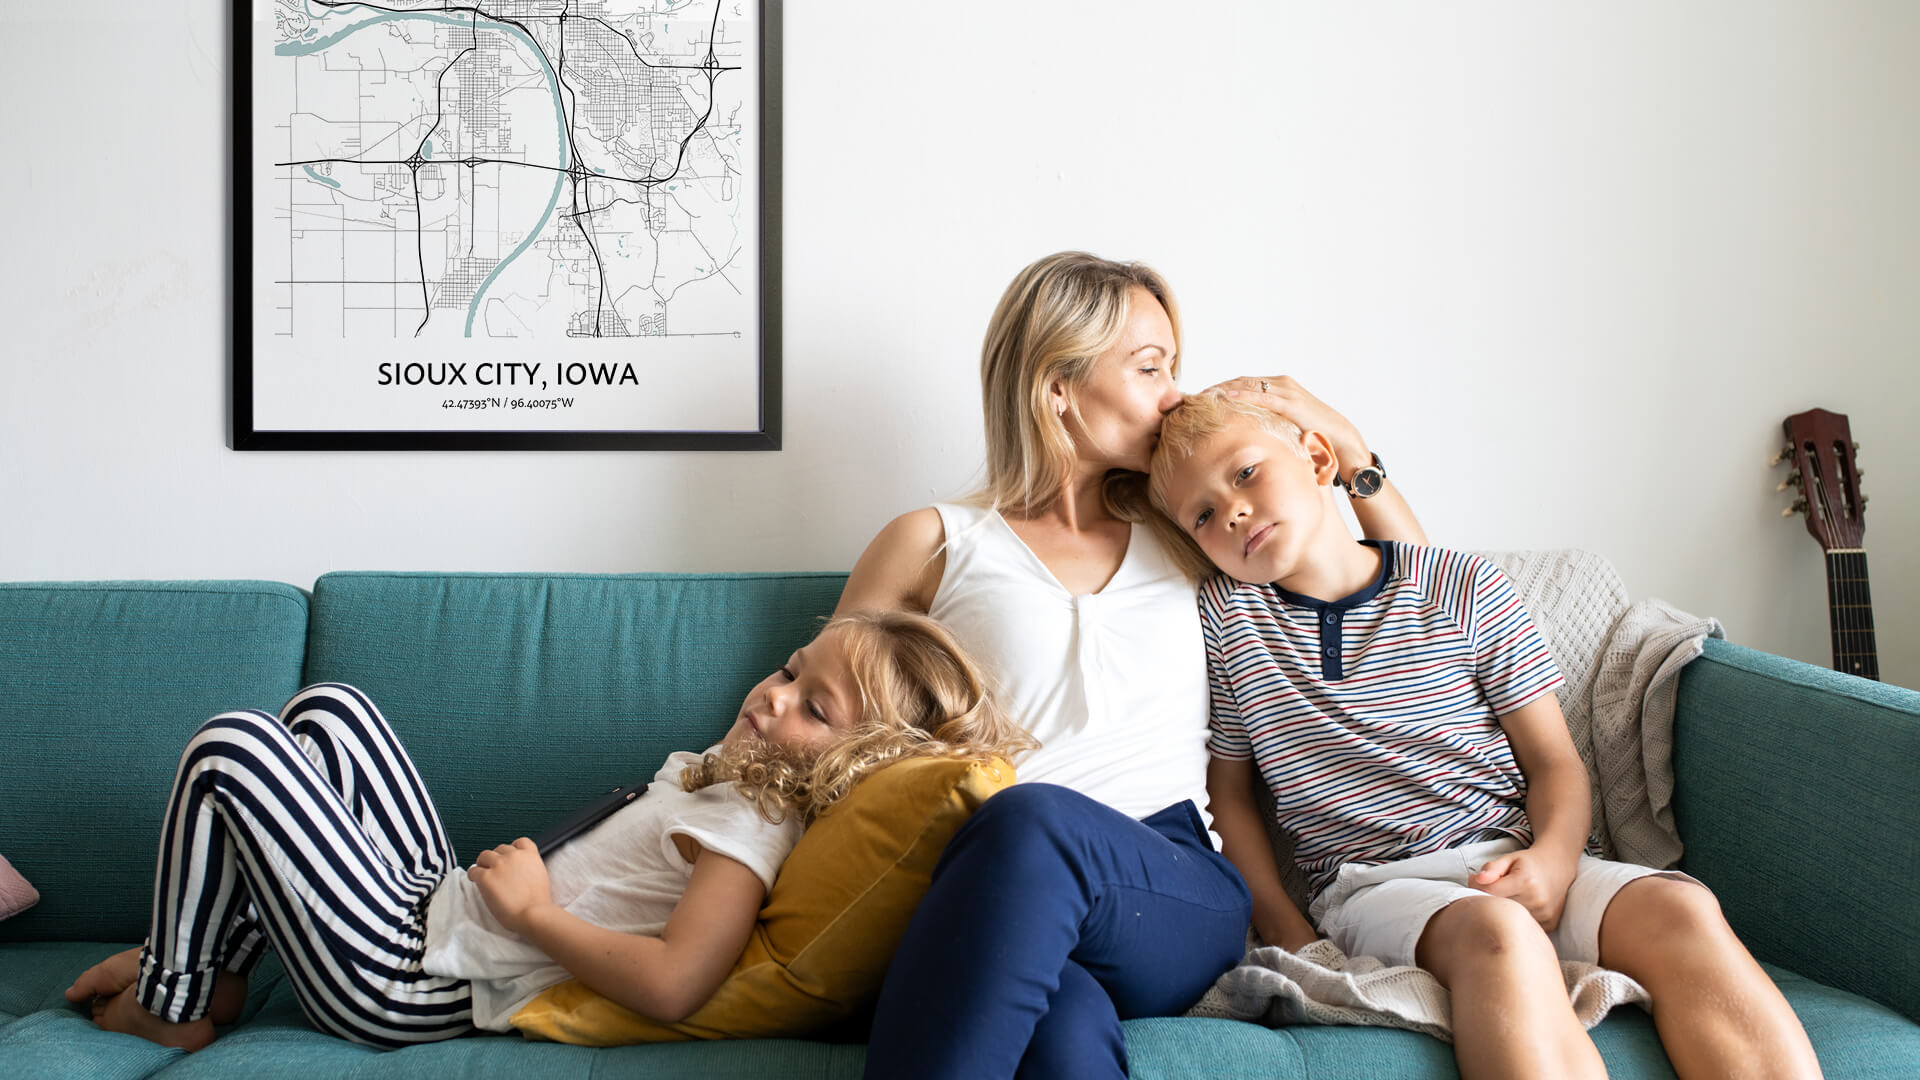 Sioux City map poster